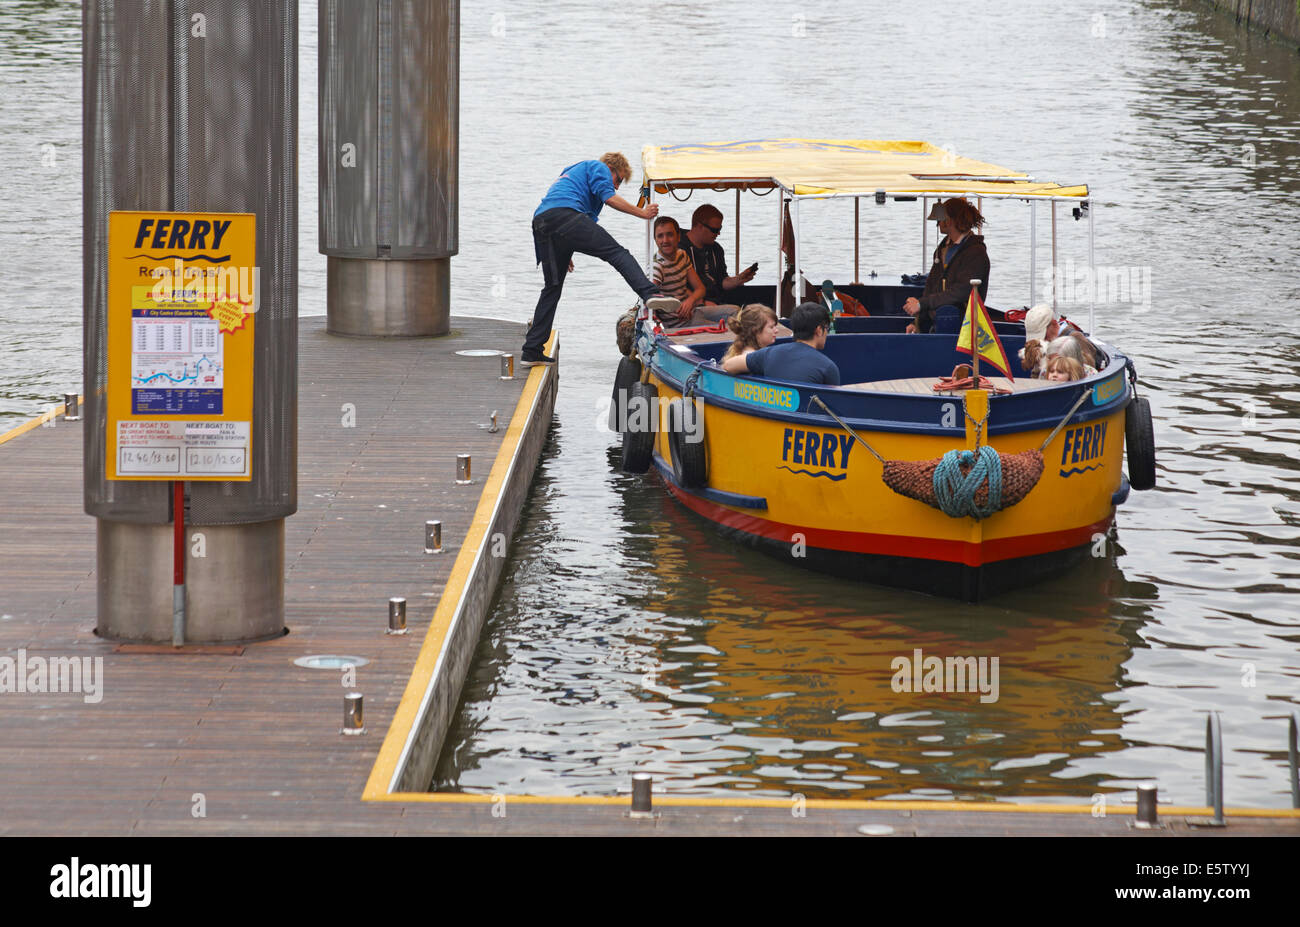 Bristol's Ferryboats - taking a ride on the Independence ferry along the River Avon at Bristol in May - Stock Image